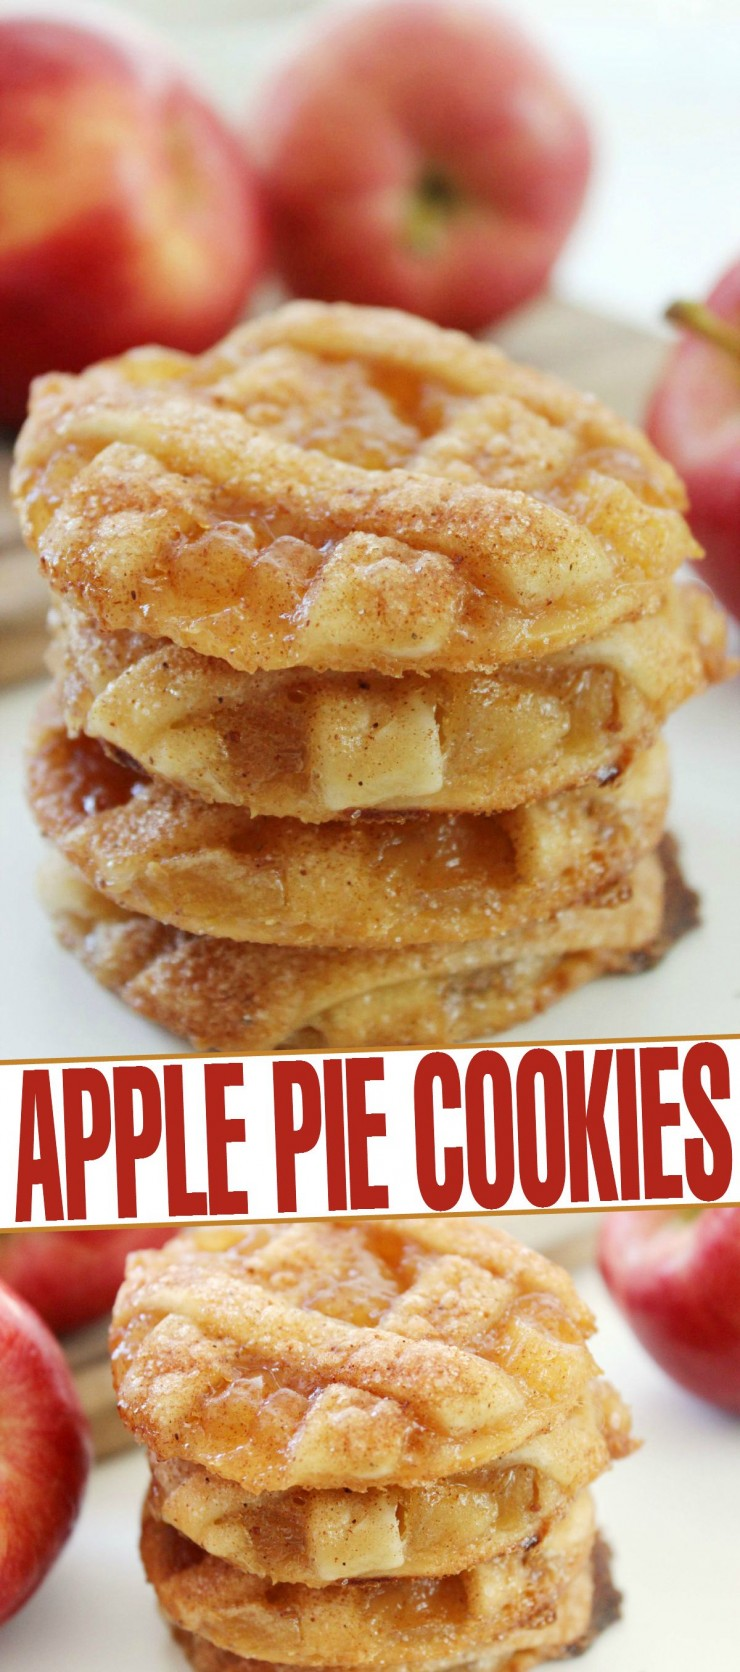 These apple pie cookies are a bite size dessert with all the flavour of apple pie!